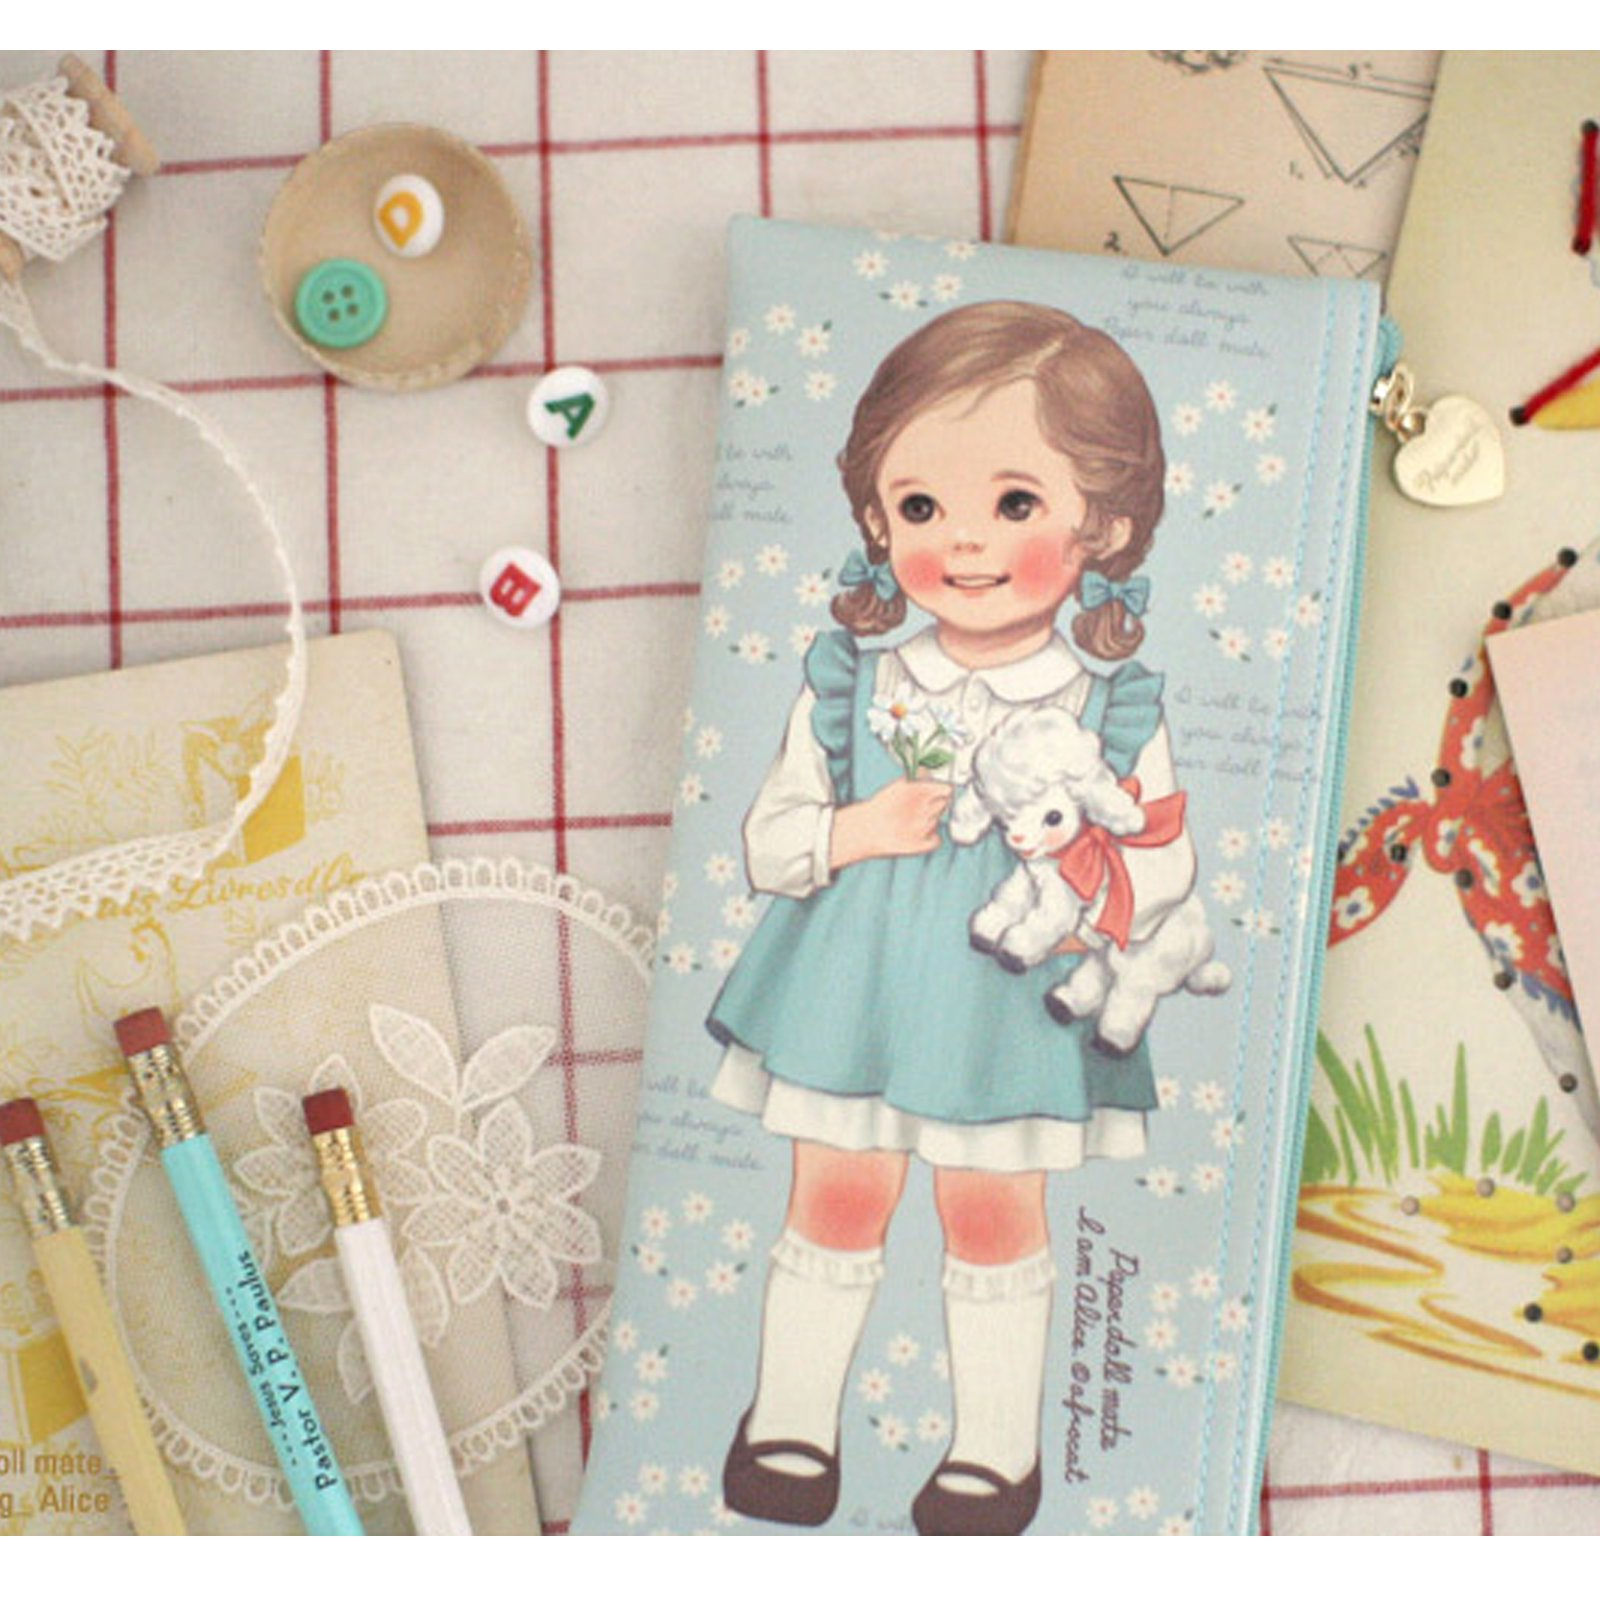 paperdollmate pencase ver007_blooming Alice by paper doll mate (Image #2)